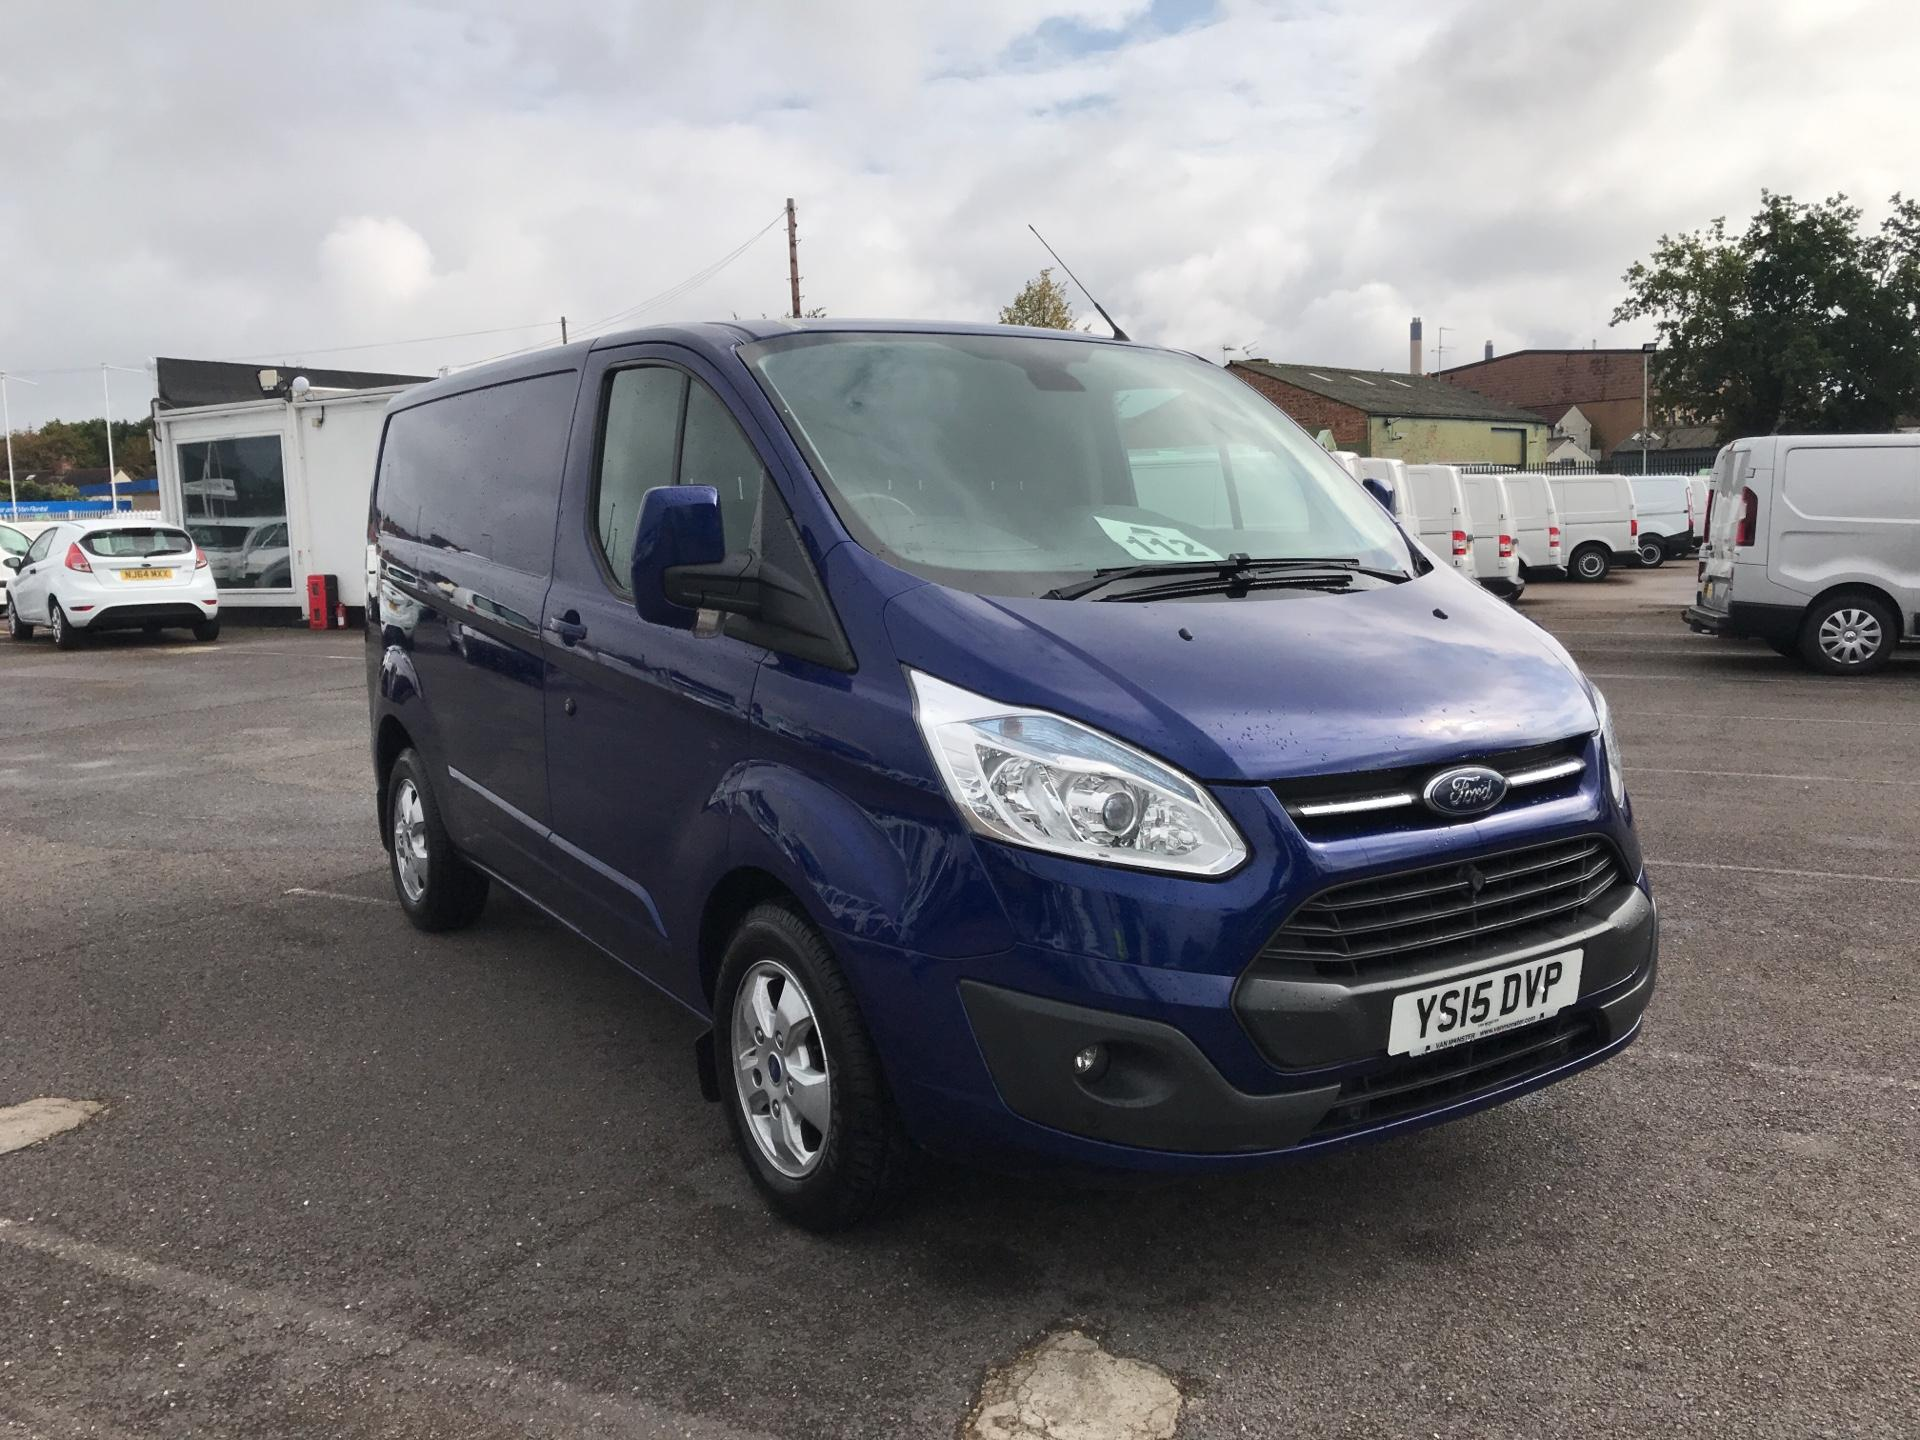 2015 Ford Transit Custom L1 H1 270 LIMITED E-TECH 125PS LOW ROOF VAN EURO 5 (YS15DVP)